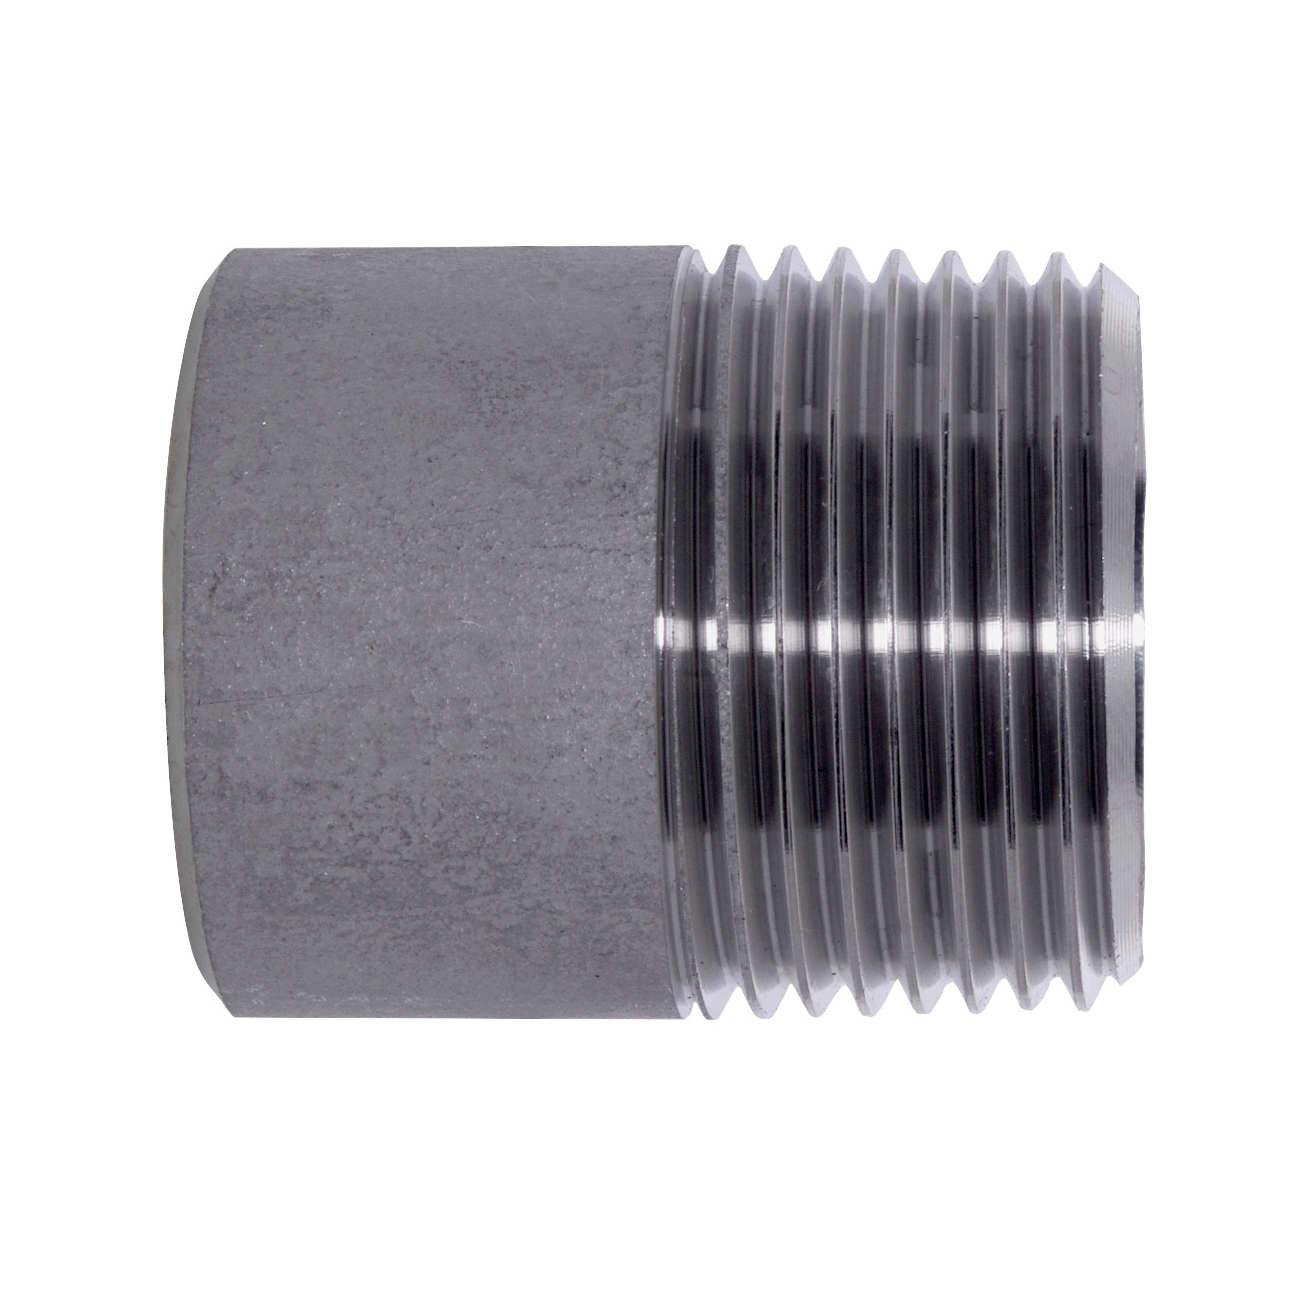 Pipe Thread Ends